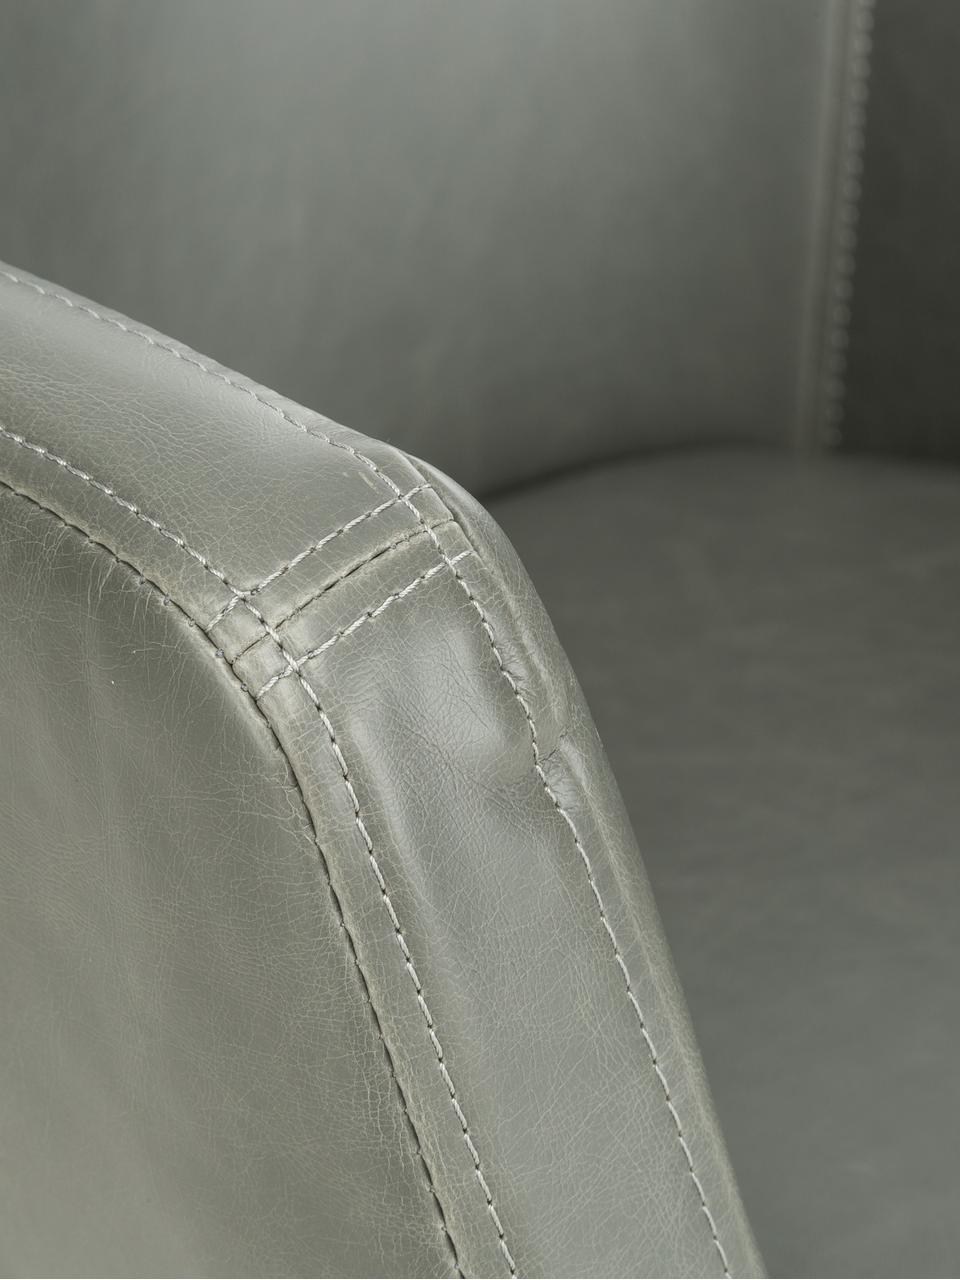 Chaise cuir synthétique Nora, Cuir synthétique gris clair, pieds chêne